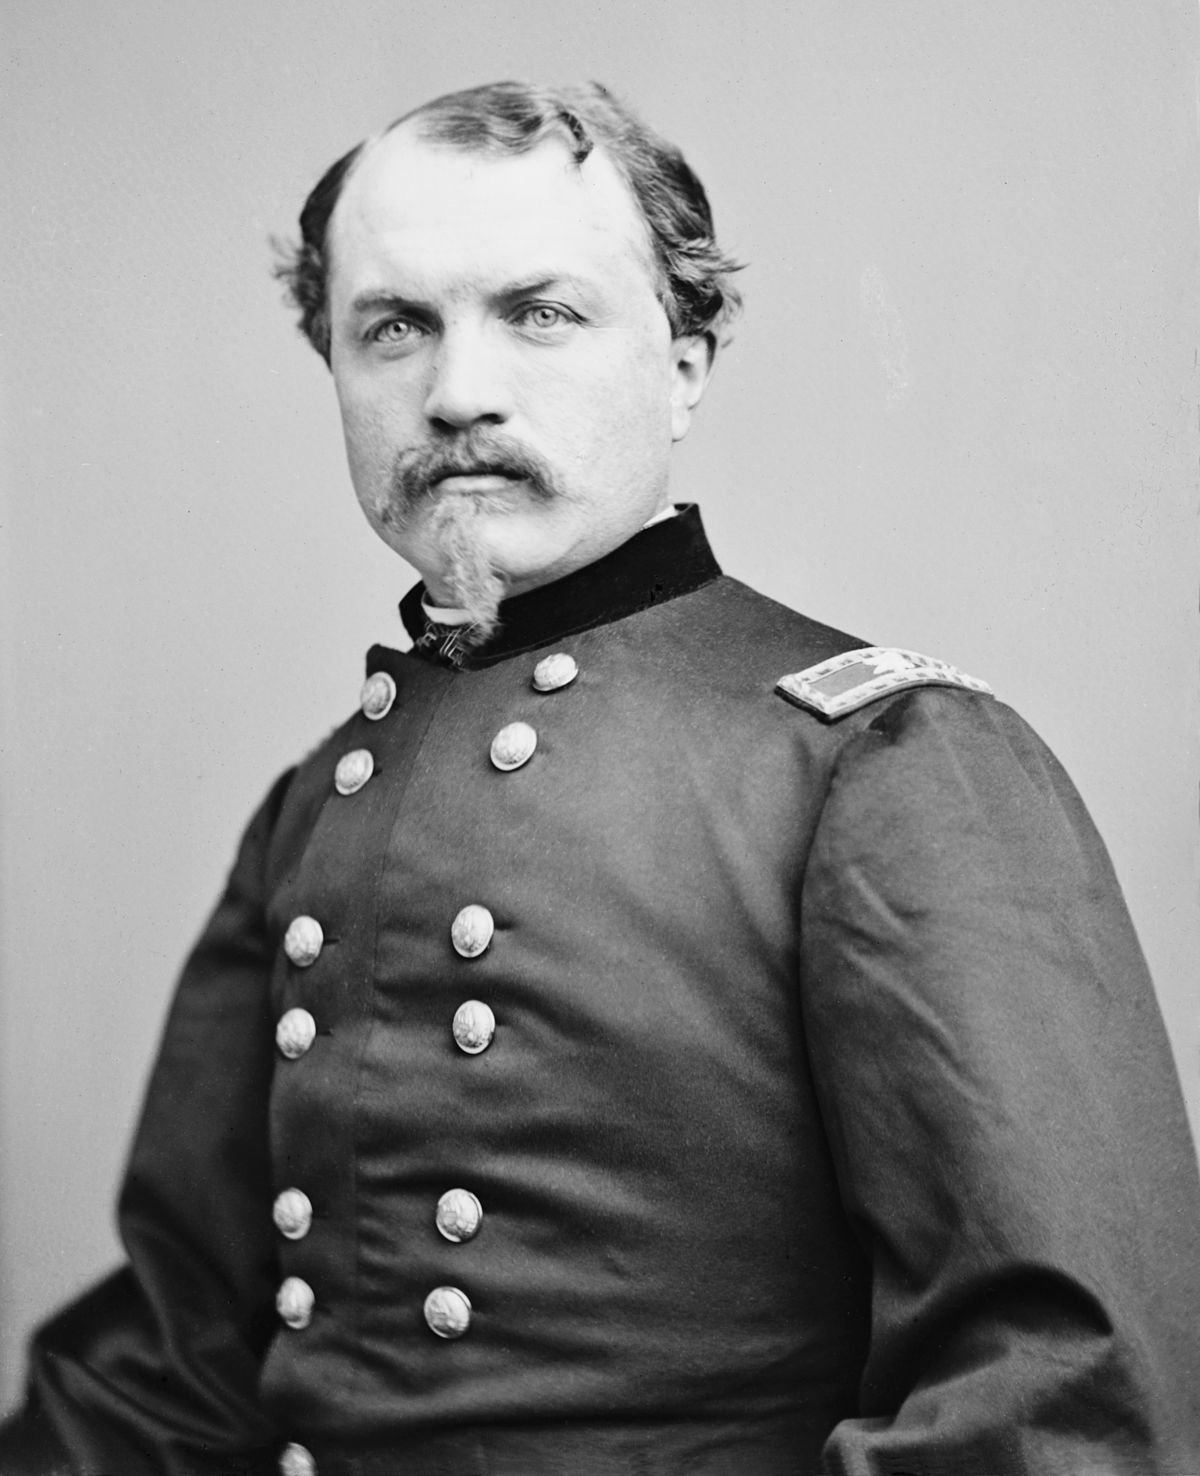 Brigadier General William Woods Averell. One of the Union Army's most accomplished cavalrymen of the war, he later clashed with General Phil Sheridan and was relieved of command in 1864. Library of Congress.